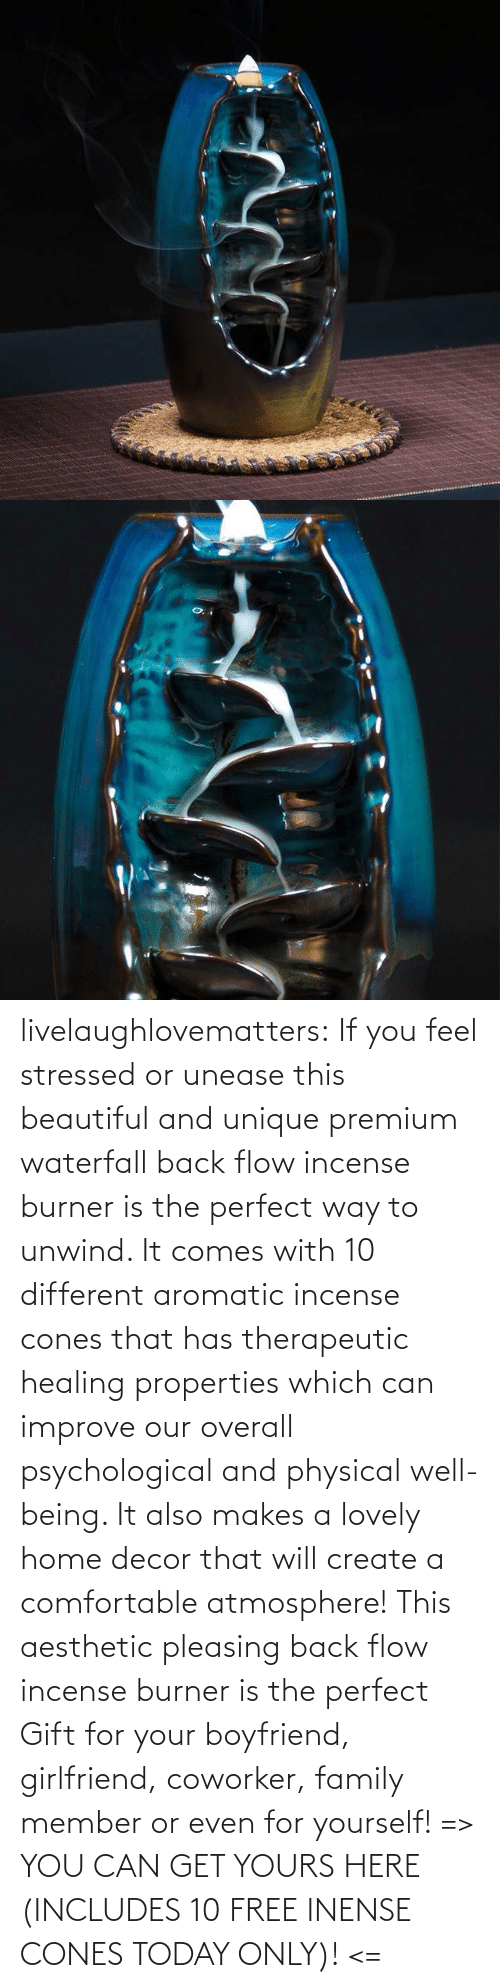 premium: livelaughlovematters: If you feel stressed or unease this beautiful and unique premium waterfall back flow incense burner is the perfect way to unwind. It comes with 10 different aromatic incense cones that has therapeutic healing properties which can improve our overall psychological and physical well-being. It also makes a lovely home decor that will create a comfortable atmosphere! This aesthetic pleasing back flow incense burner is the perfect Gift for your boyfriend, girlfriend, coworker, family member or even for yourself! => YOU CAN GET YOURS HERE (INCLUDES 10 FREE INENSE CONES TODAY ONLY)! <=